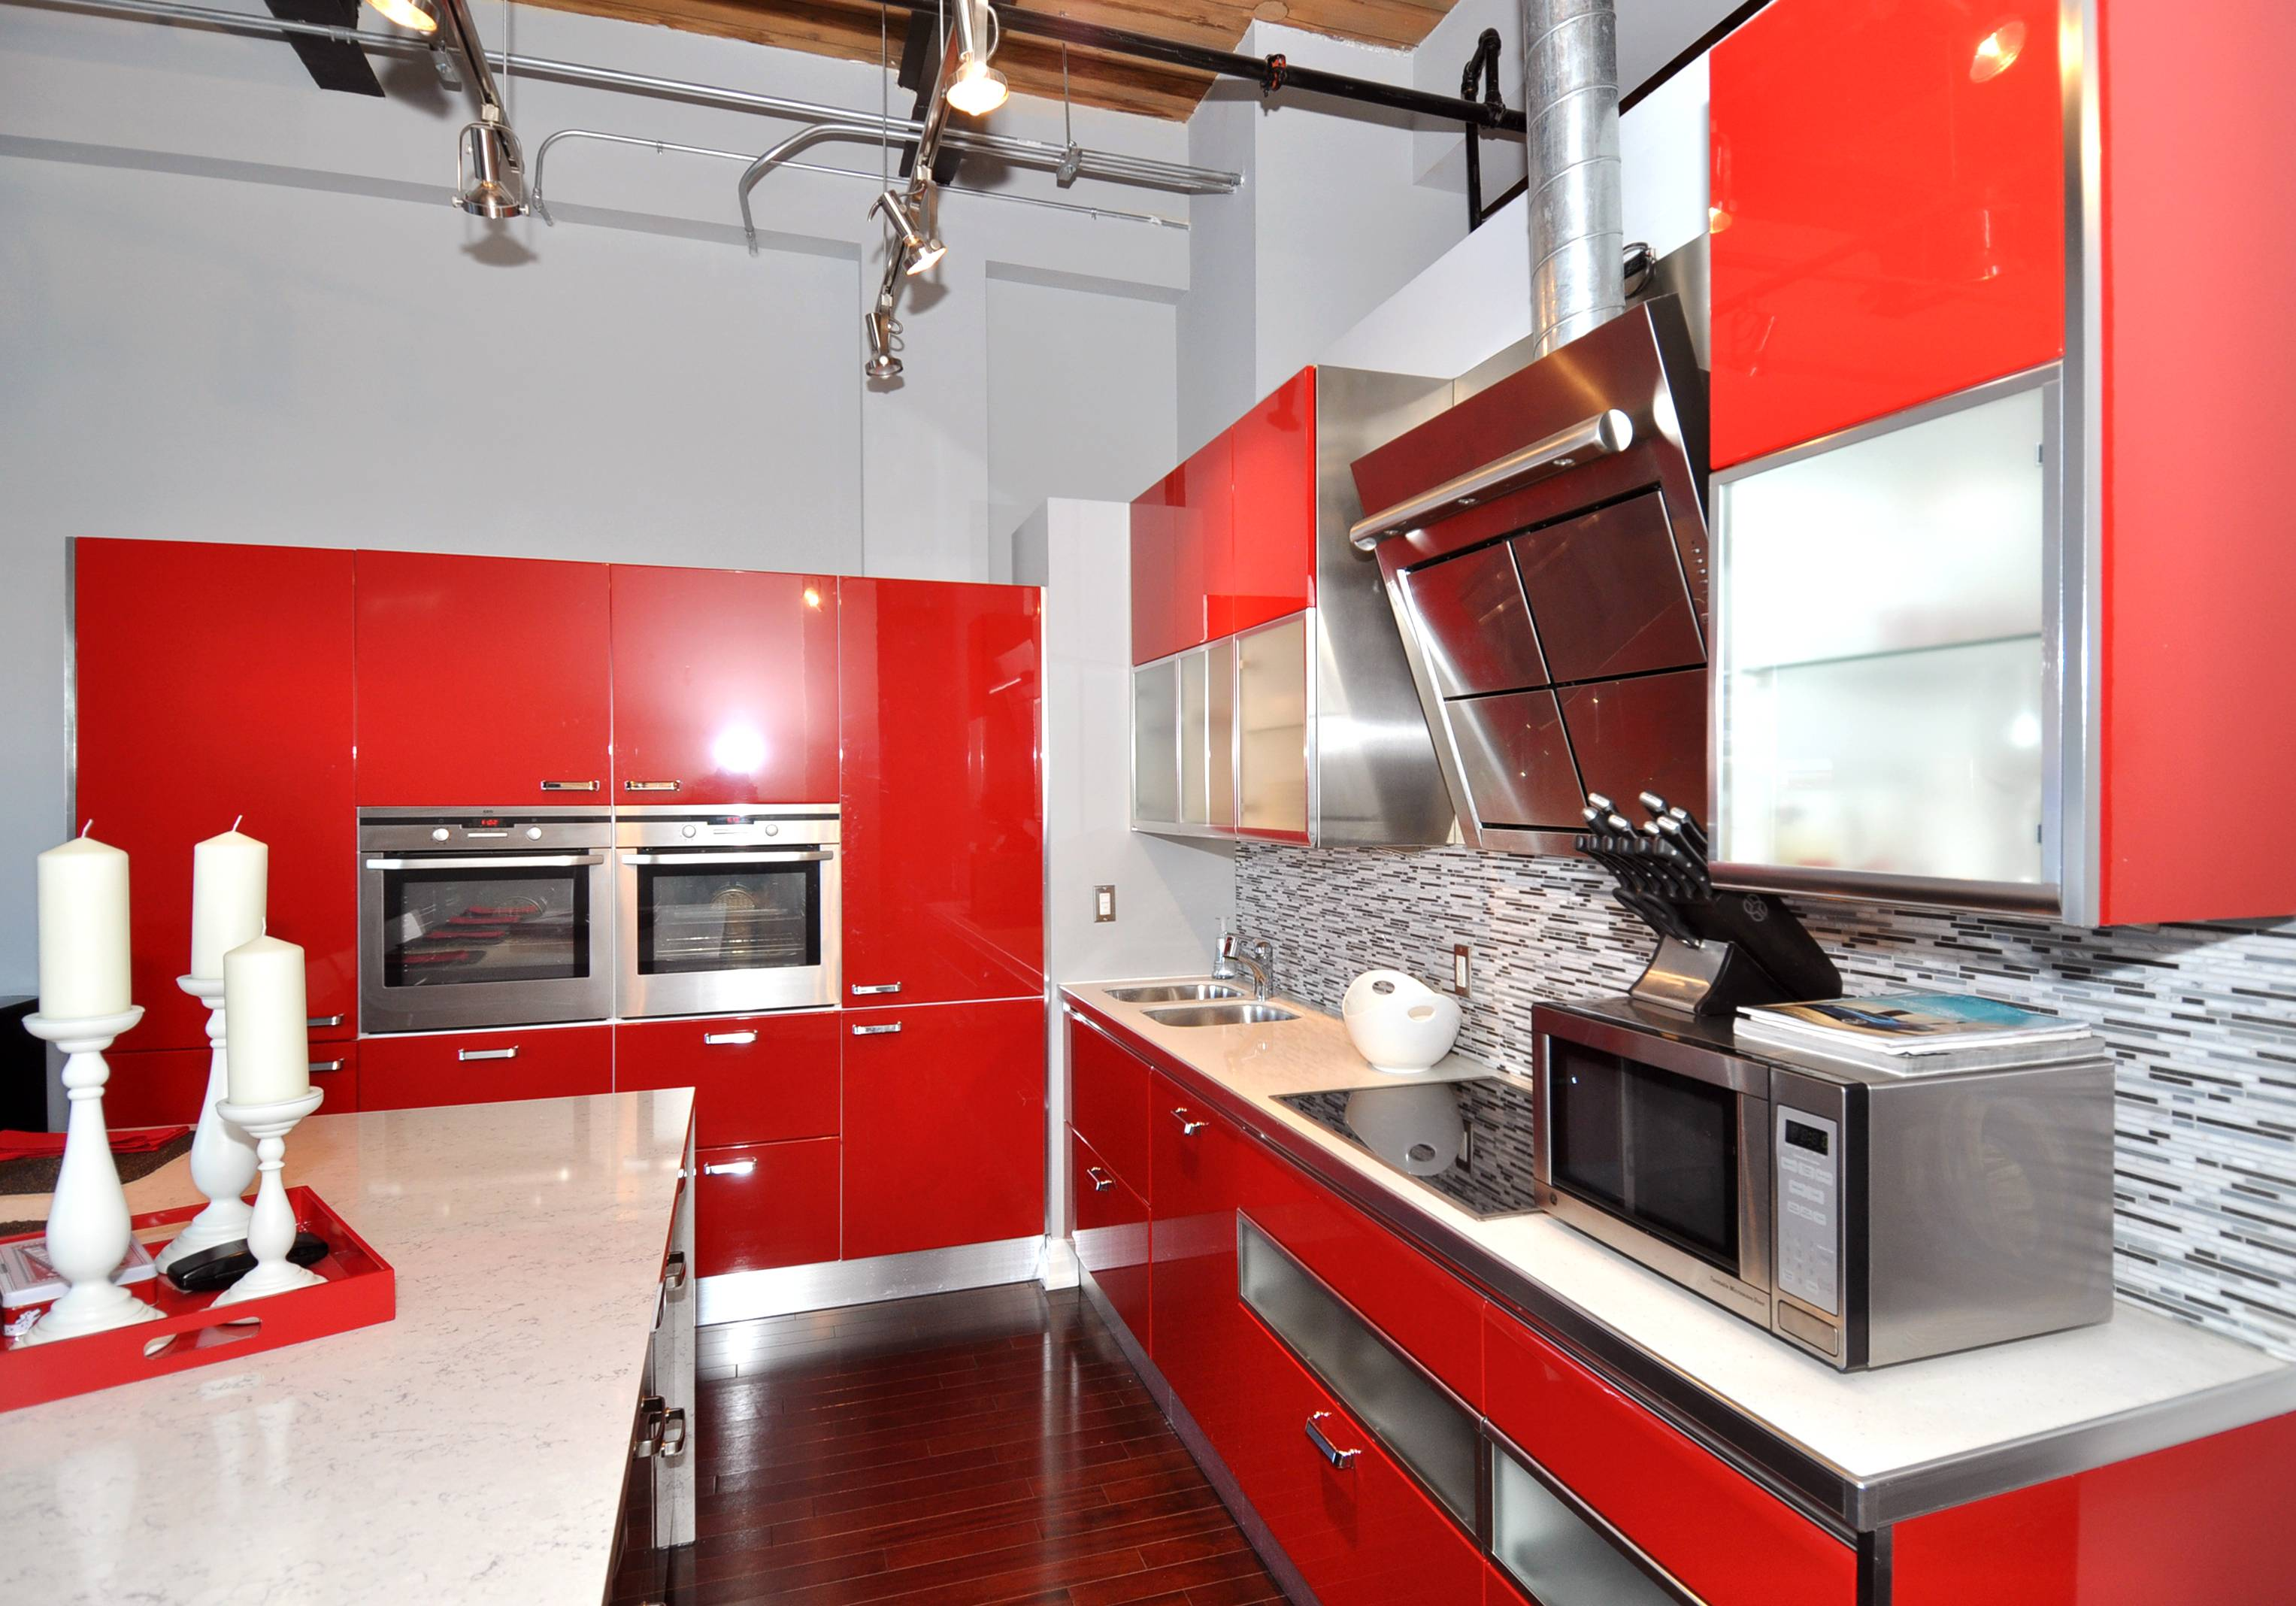 kitchen-wonderful-design-room-italian-kitchens-ideas-vivacious-red-kitchen-ideas-red-kitchen-ideas-kitchen-images-red-kitchen-ideas